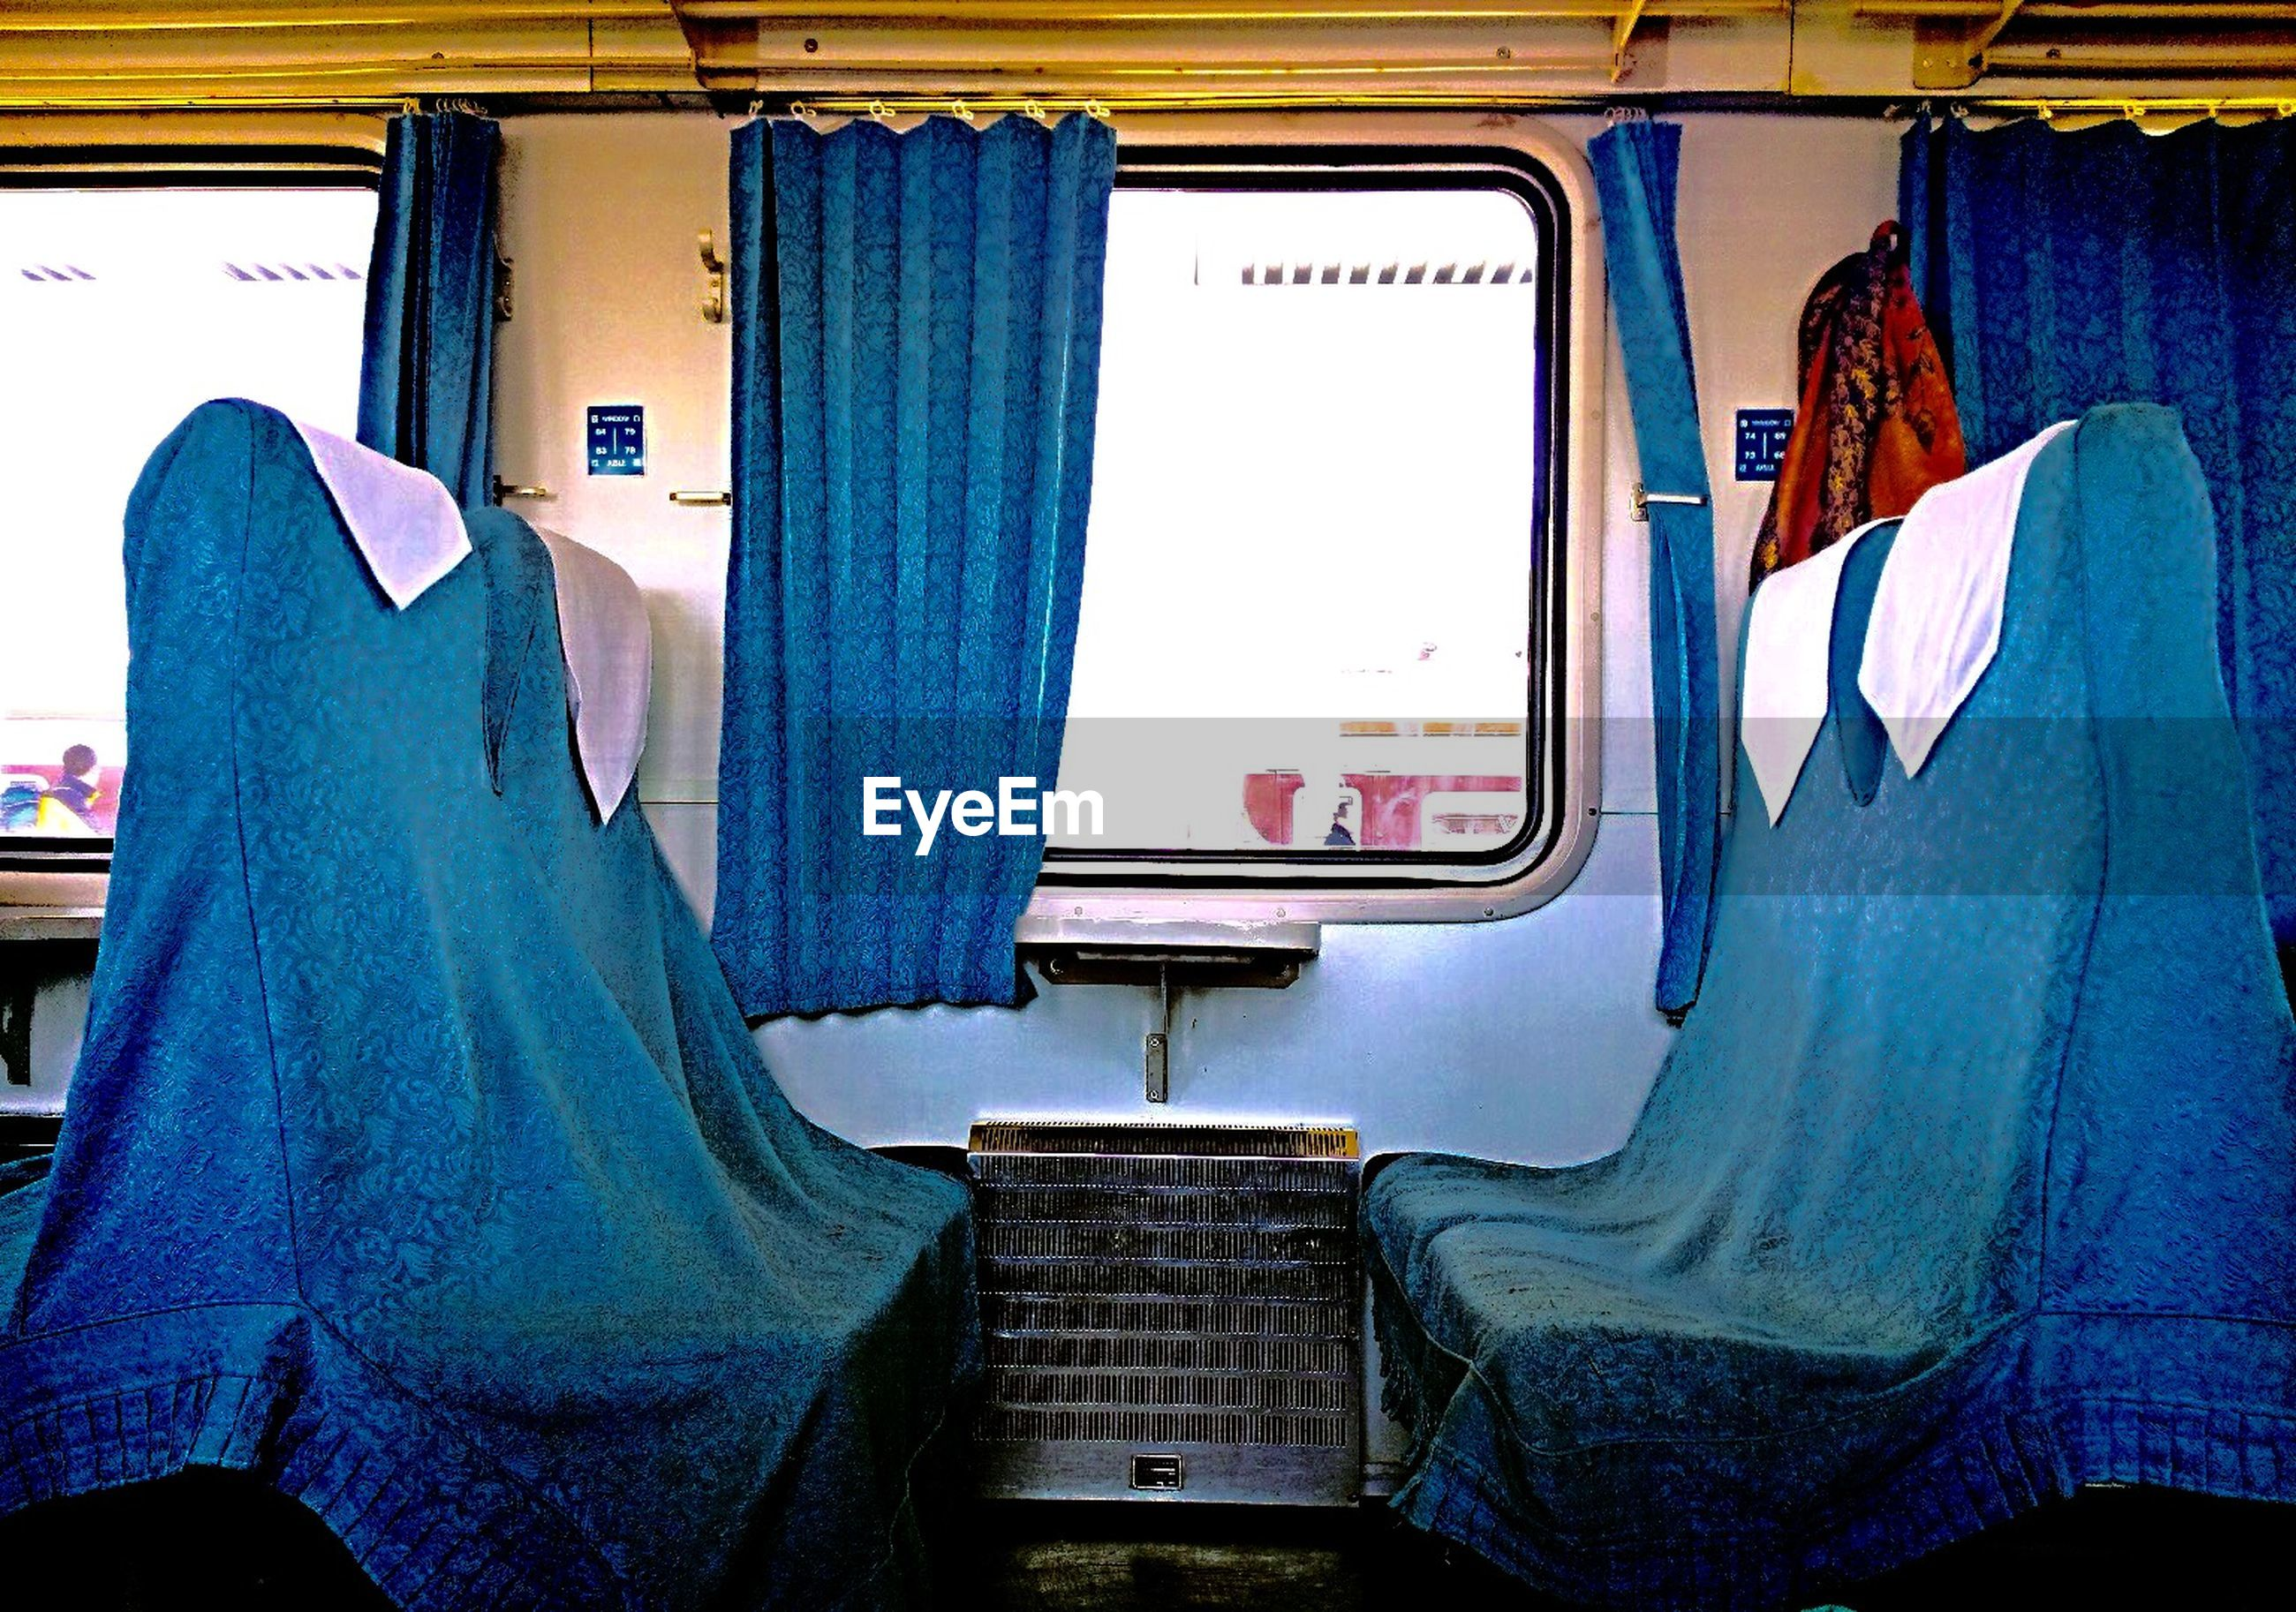 indoors, men, transportation, rear view, lifestyles, window, public transportation, mode of transport, travel, architecture, person, casual clothing, standing, built structure, train - vehicle, sitting, vehicle interior, day